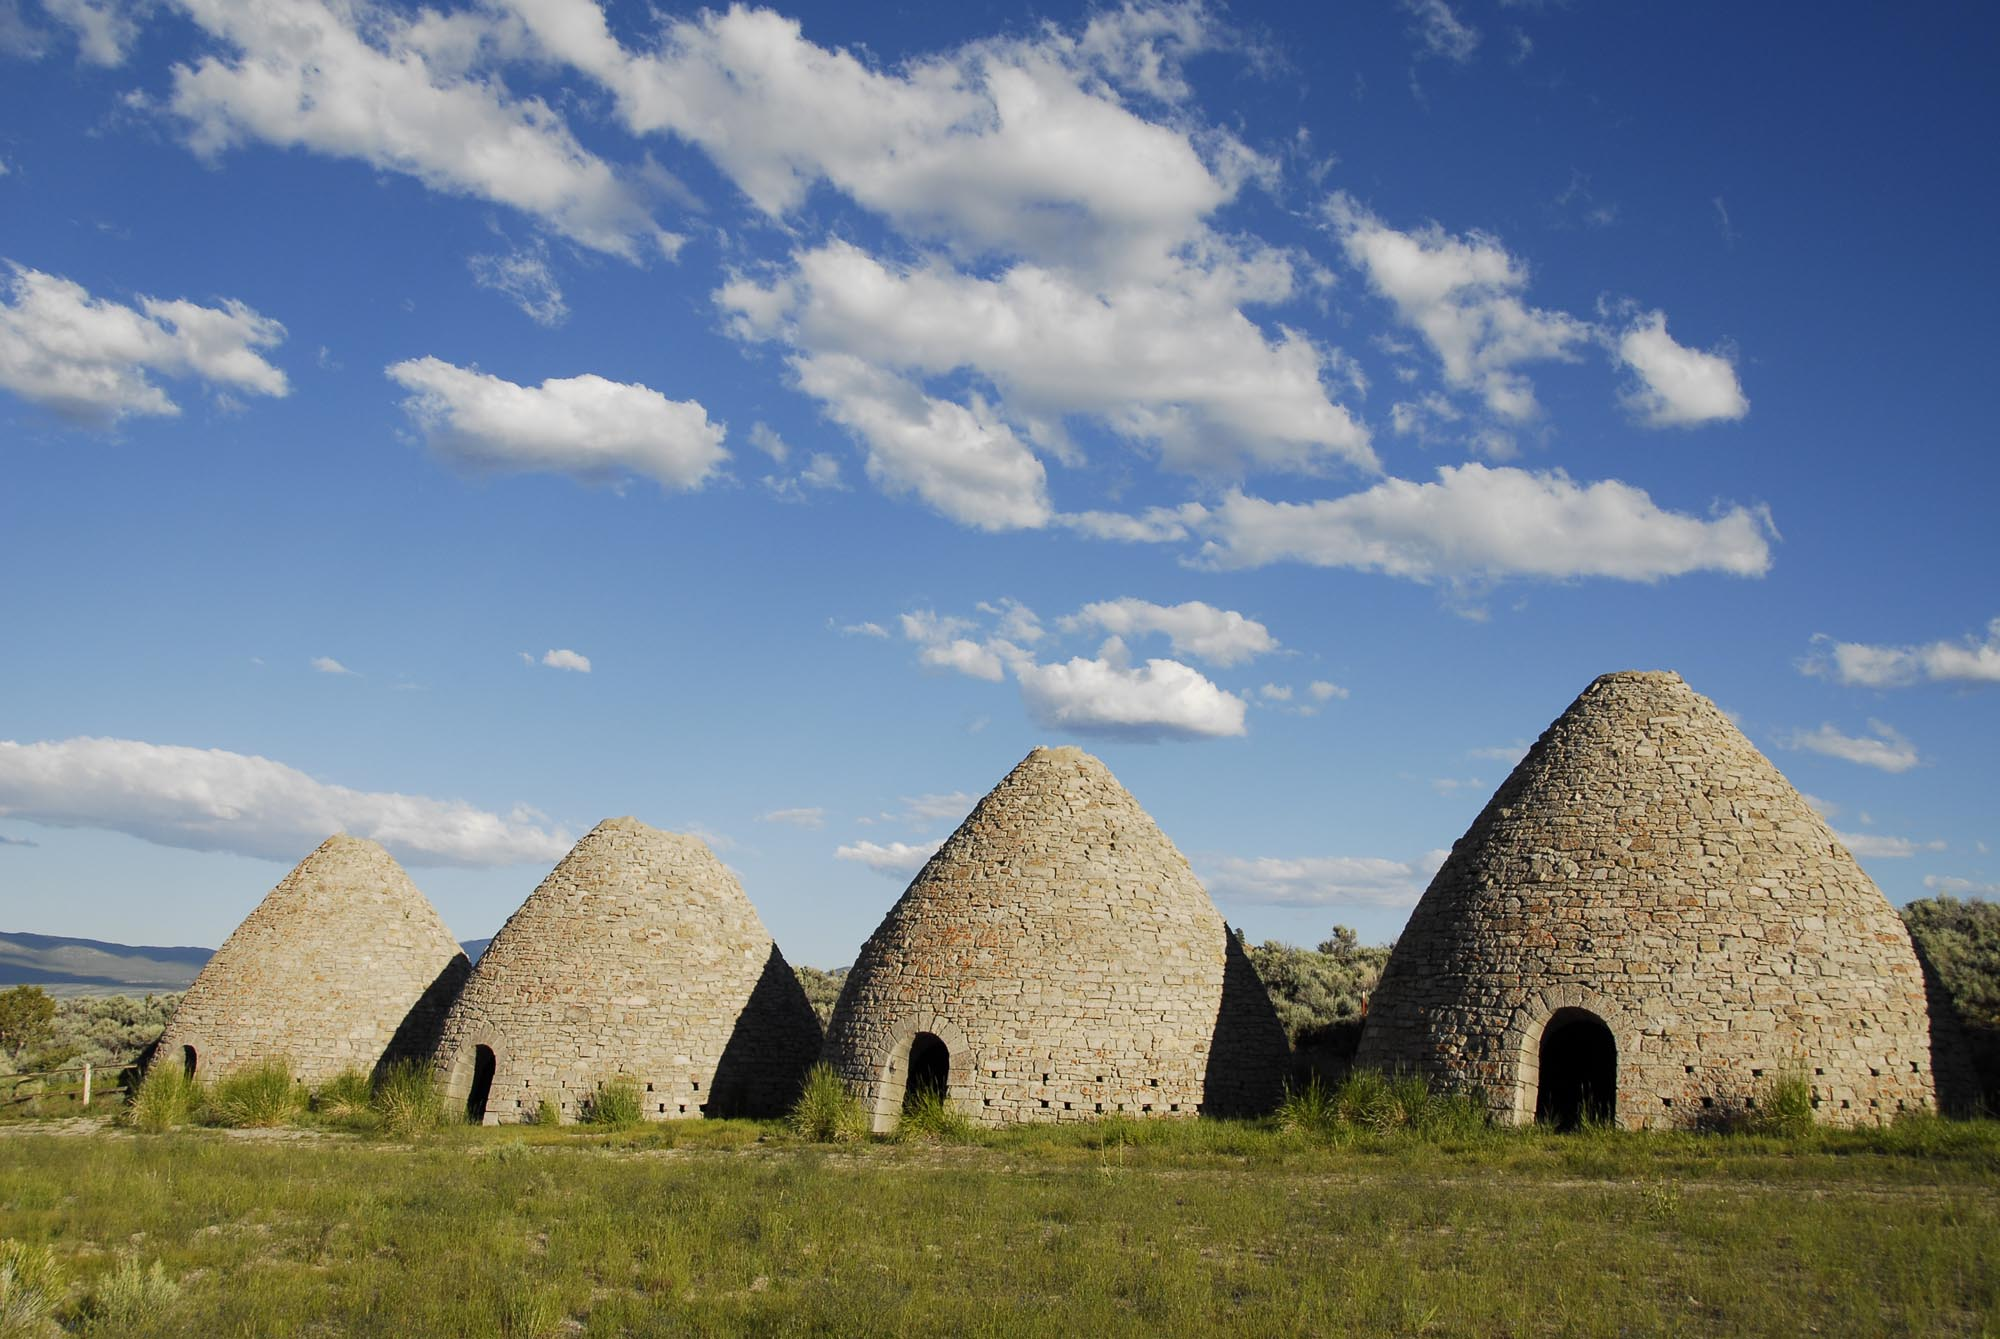 Italian immigrants produced charcoal in ovens like these at Ward Charcoal Ovens State Historical Park